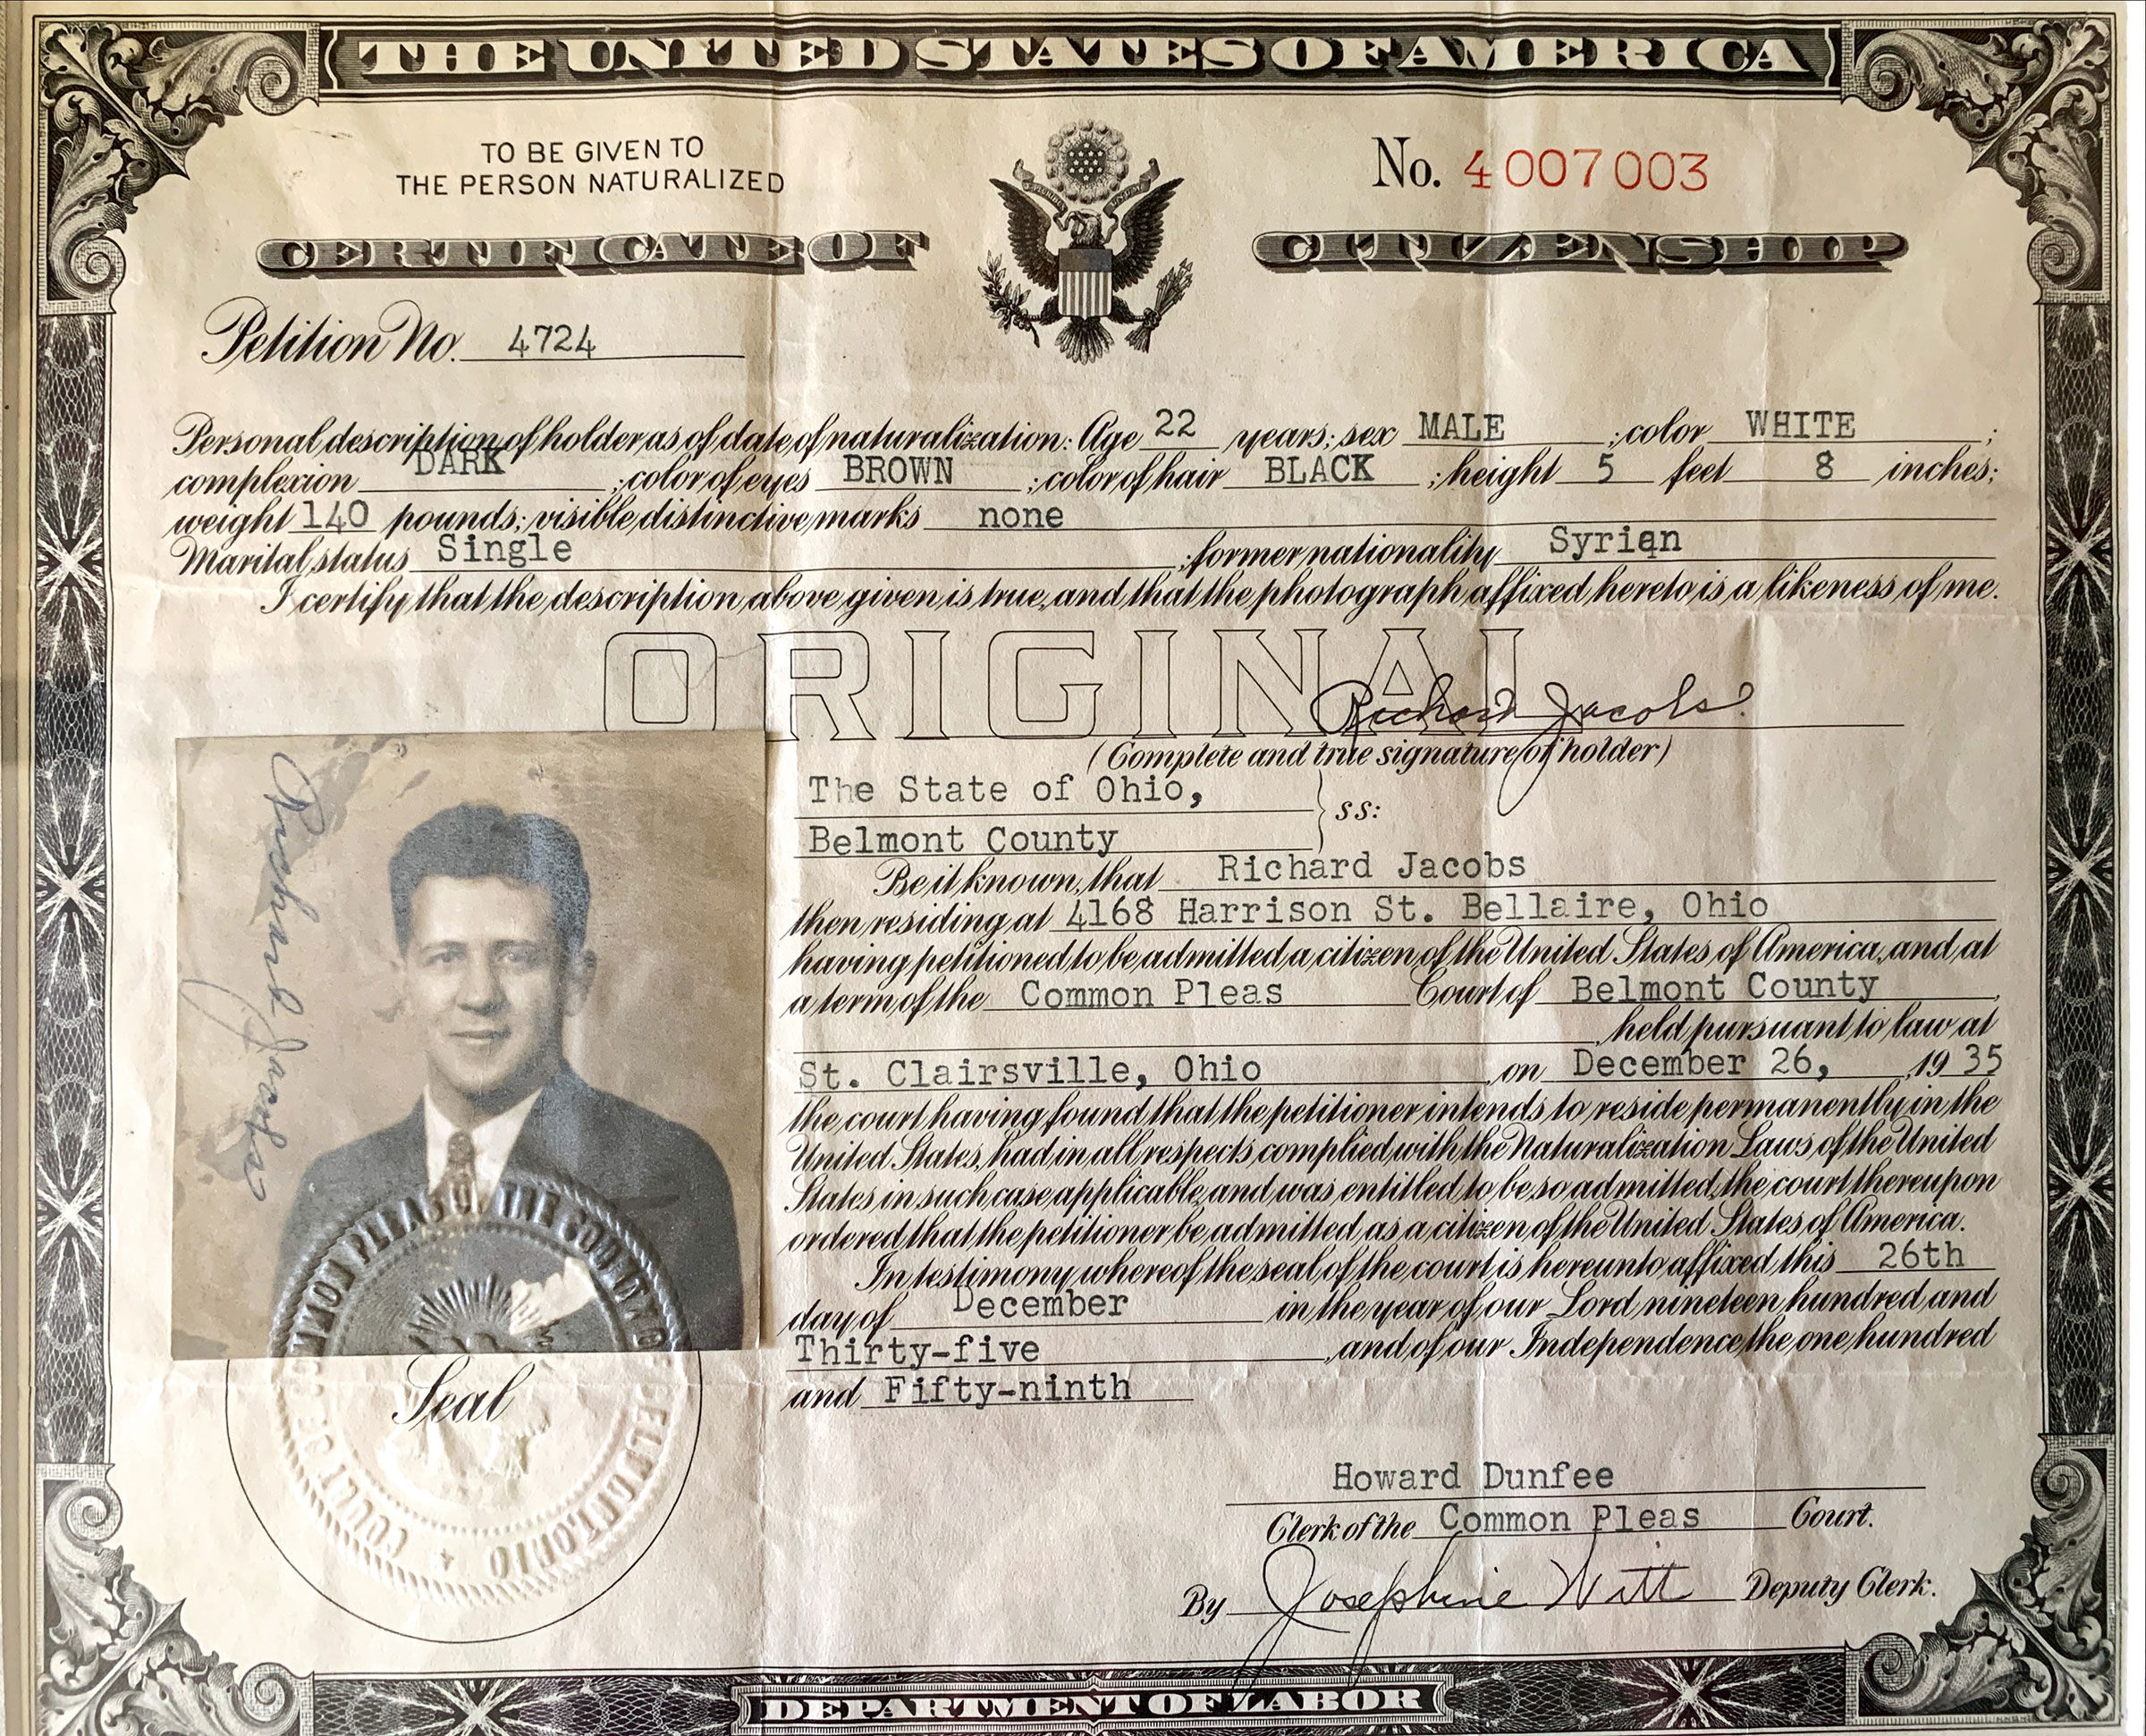 The citizenship papers of Henderson's grandfather.